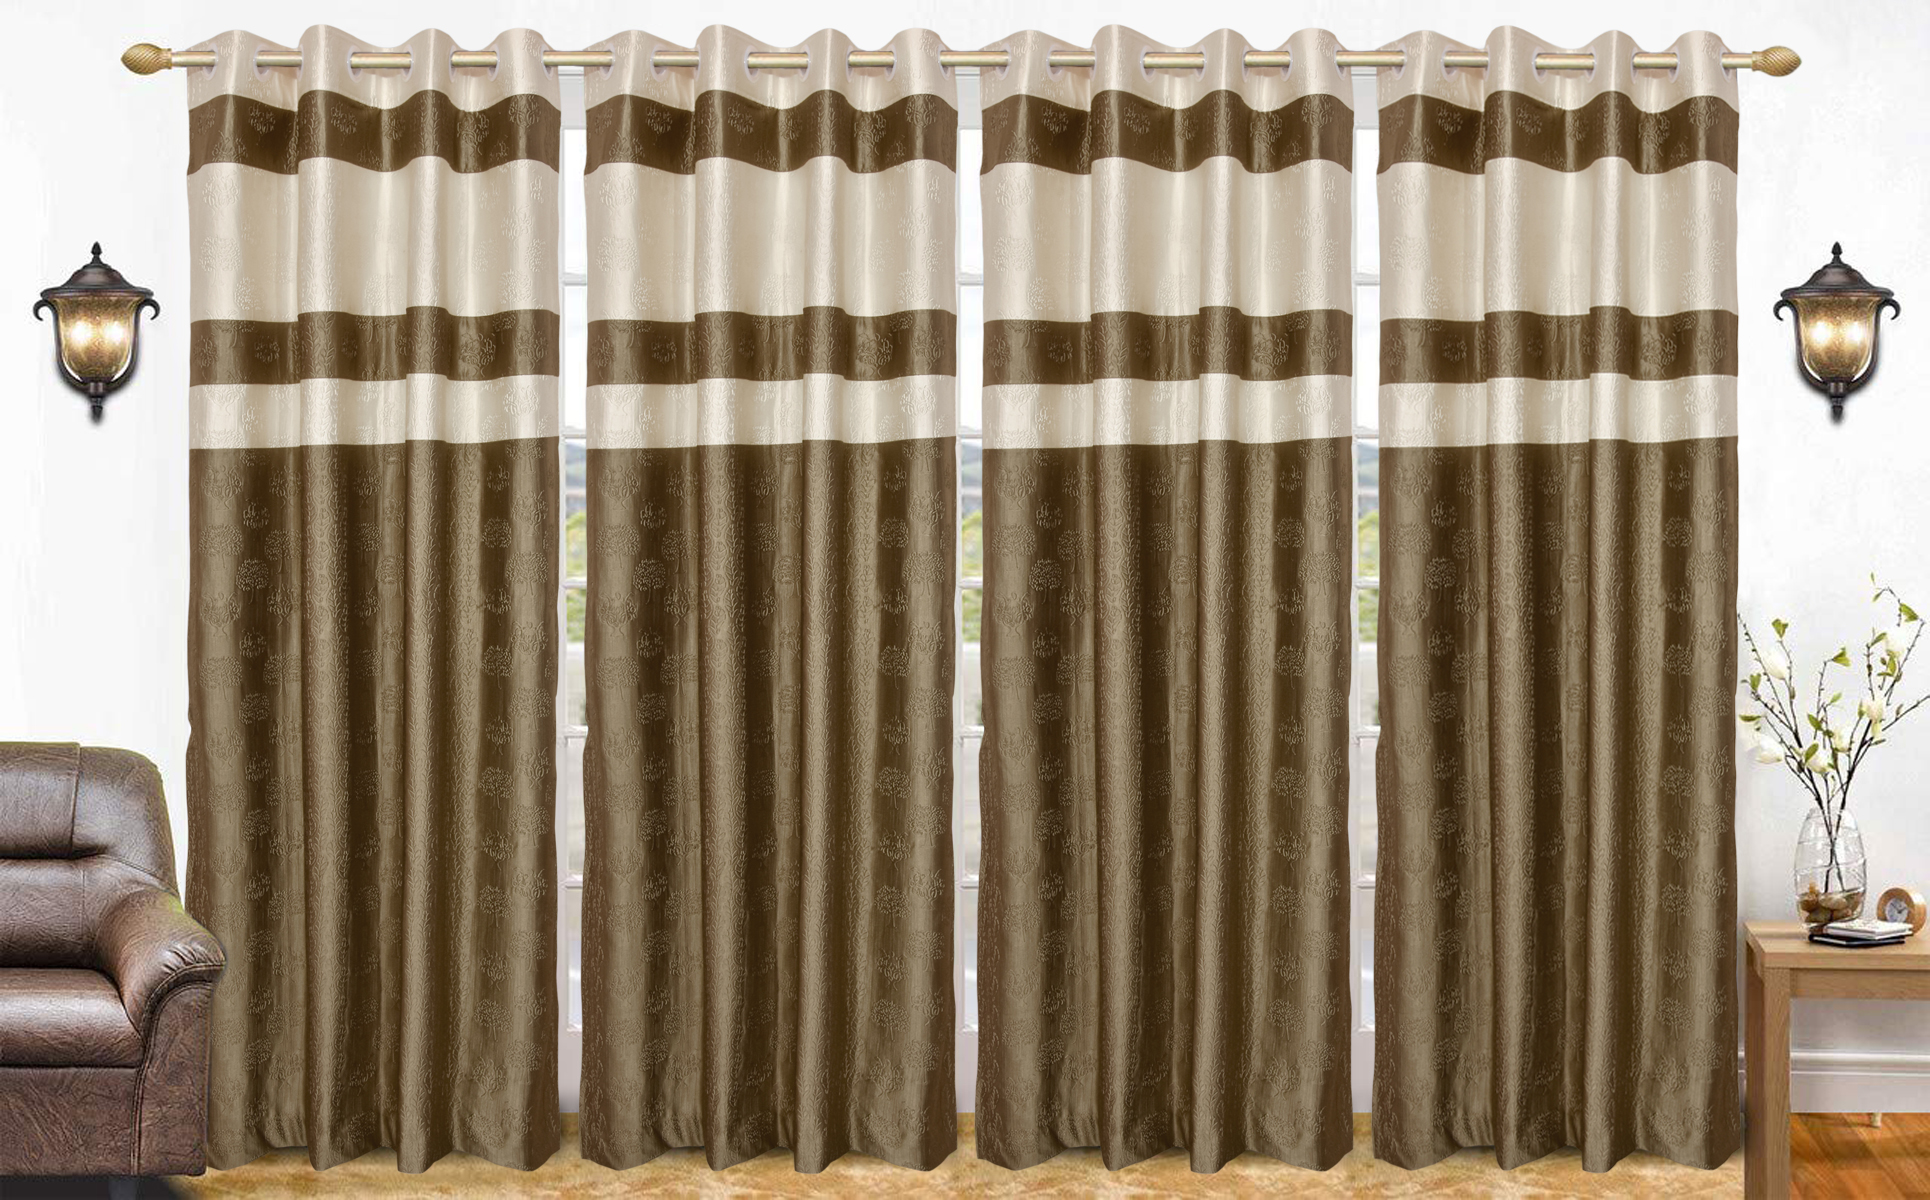 Kuber Industries Embossed Print 4 Pieces Silk Patio Sliding Door Curtain Wide Blackout Curtains Keep Warm Draperies Sliding Glass Door Drapes 7 Fe